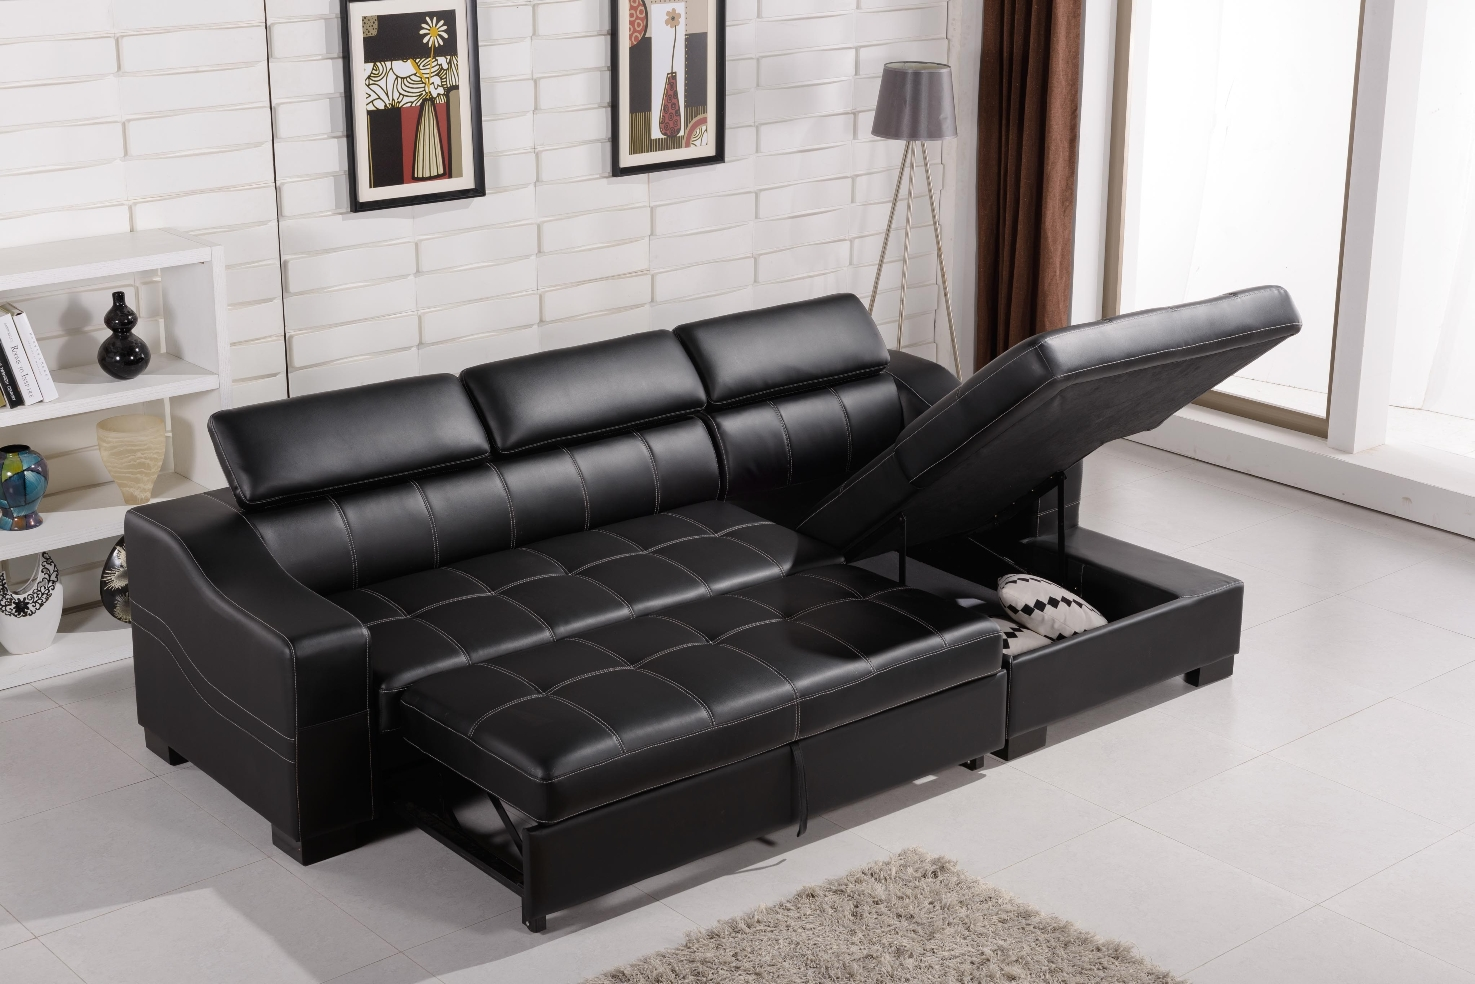 tips to consider when buying a sleeper sofa sleeper sofa. Black Bedroom Furniture Sets. Home Design Ideas